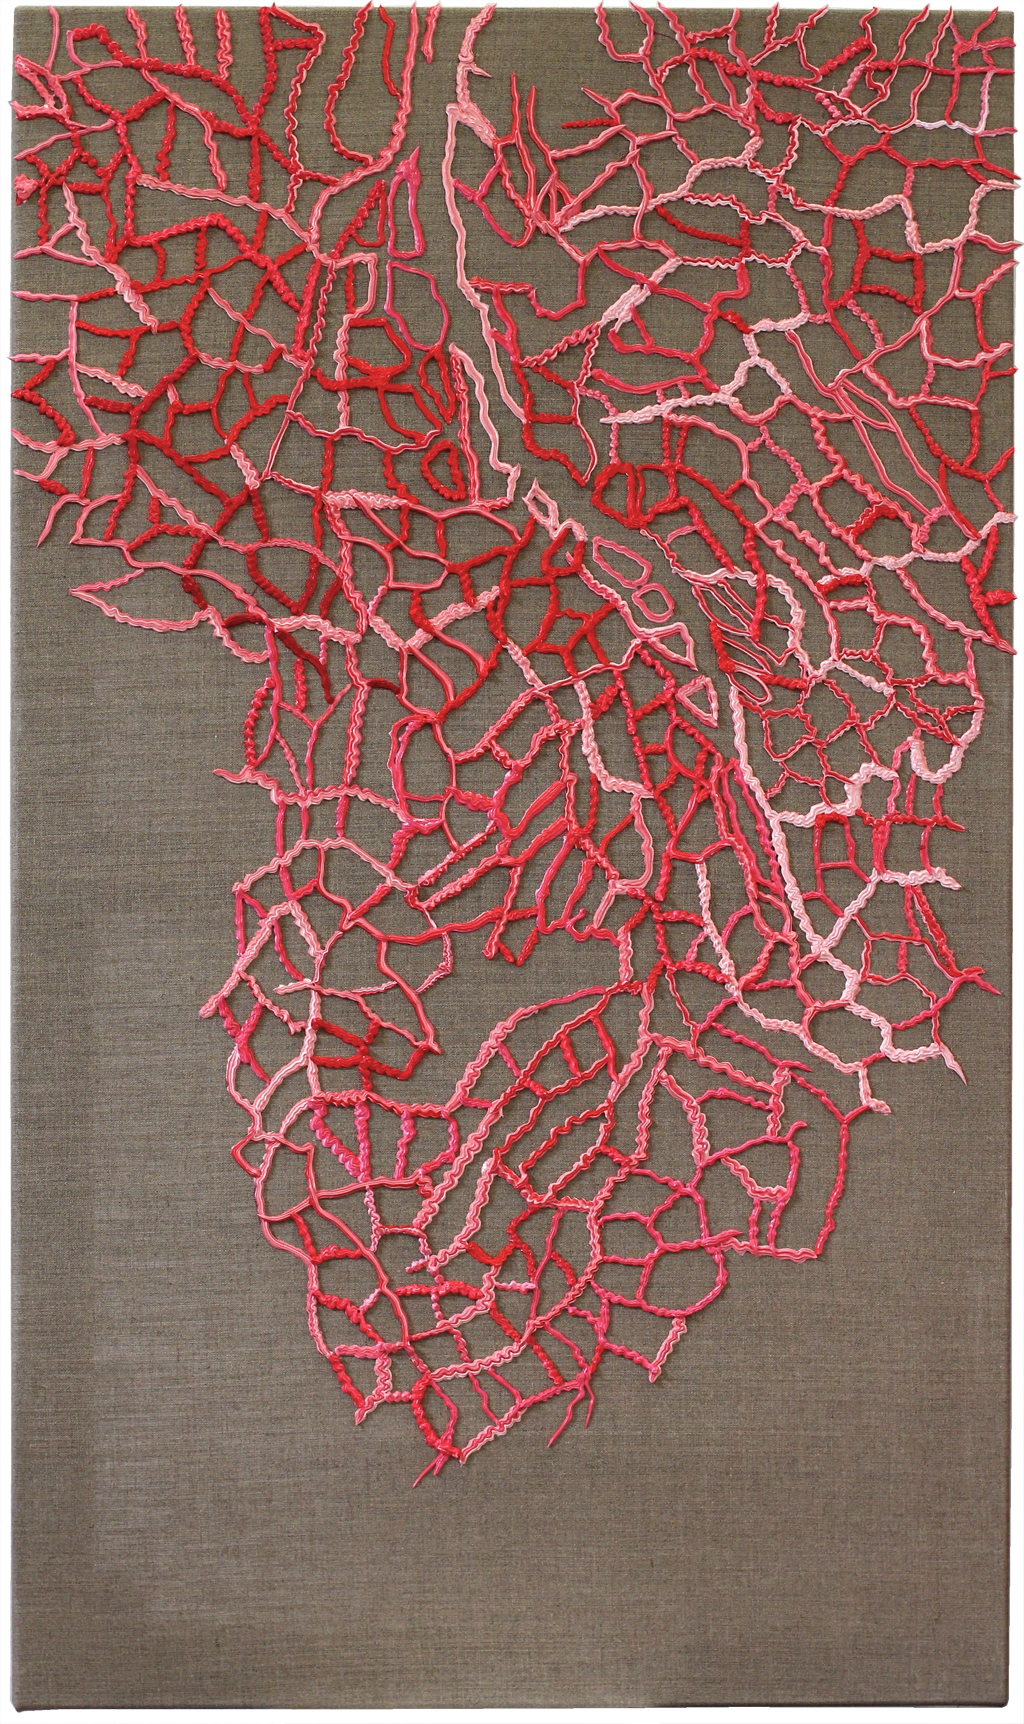 CORAL CRITIQUE - II acrylics, spray-paint, resin dispersion, mineral fillers and pigment on canvas 70 x 120 cm, 2019